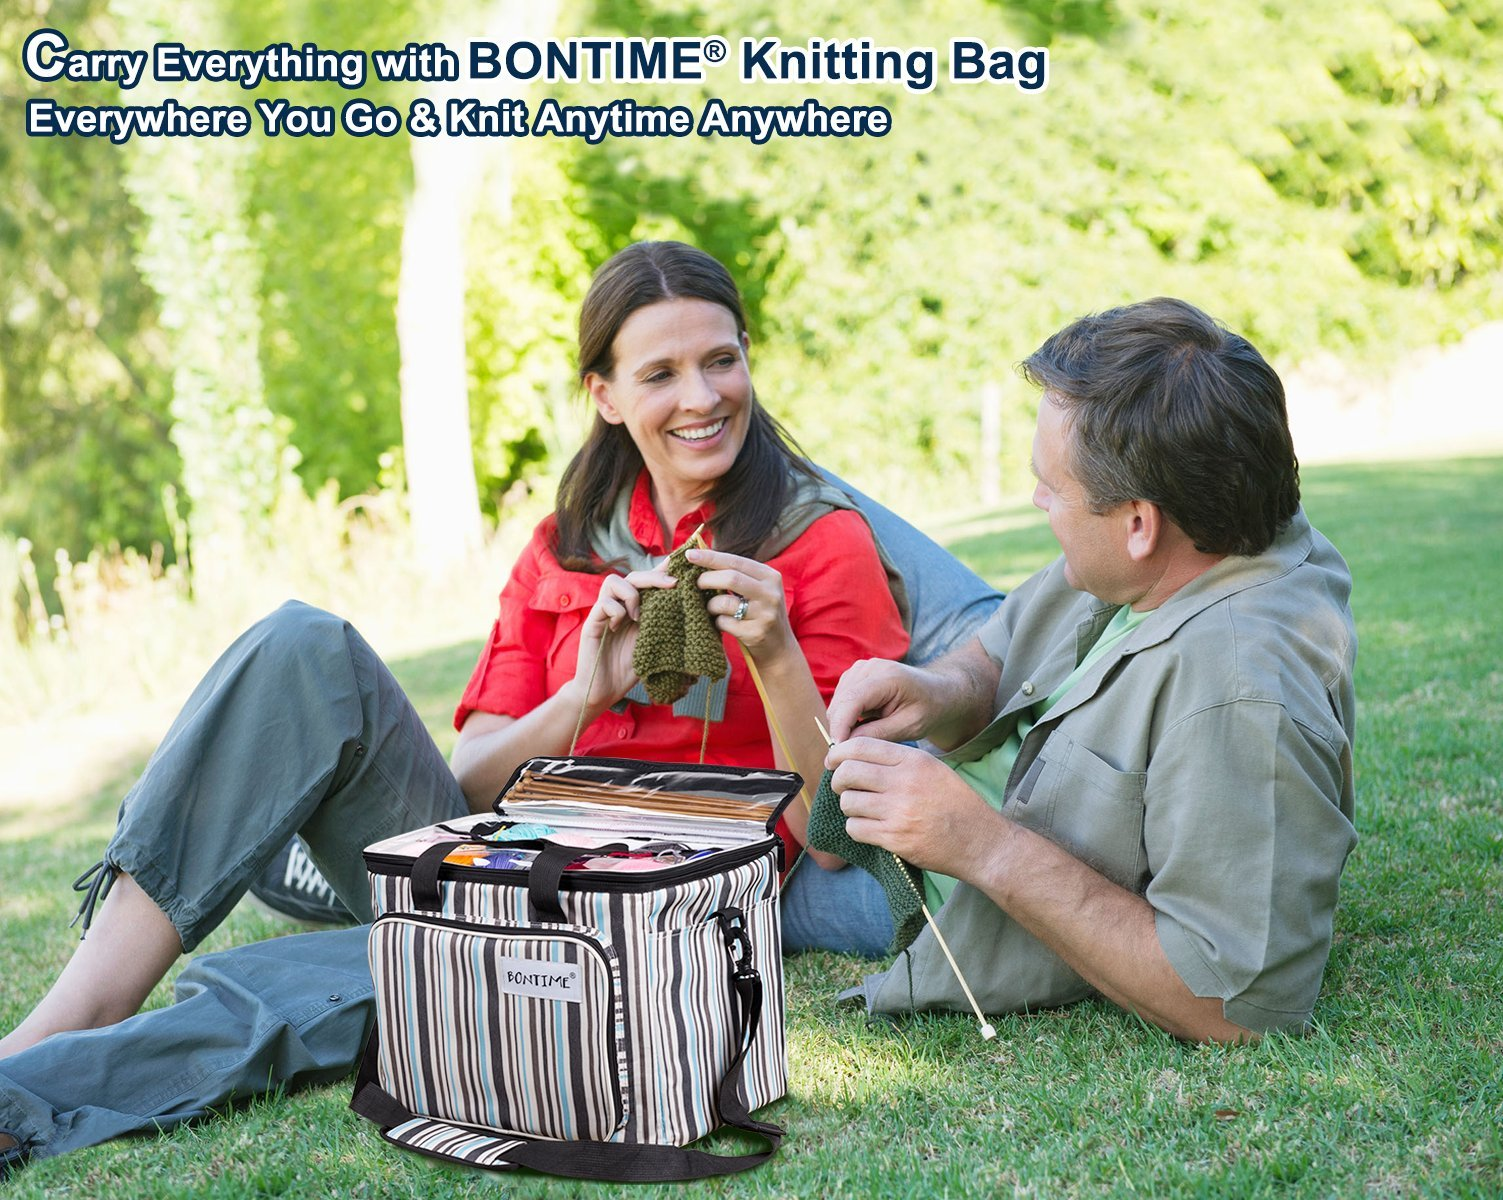 BONTIME Knitting Bag - High Capacity Striped Yarn Storage Tote Bag,Project Bags with Roomy Interior,Great for Organizing Everything You Need for Each of Projects,Large by BONTIME (Image #8)